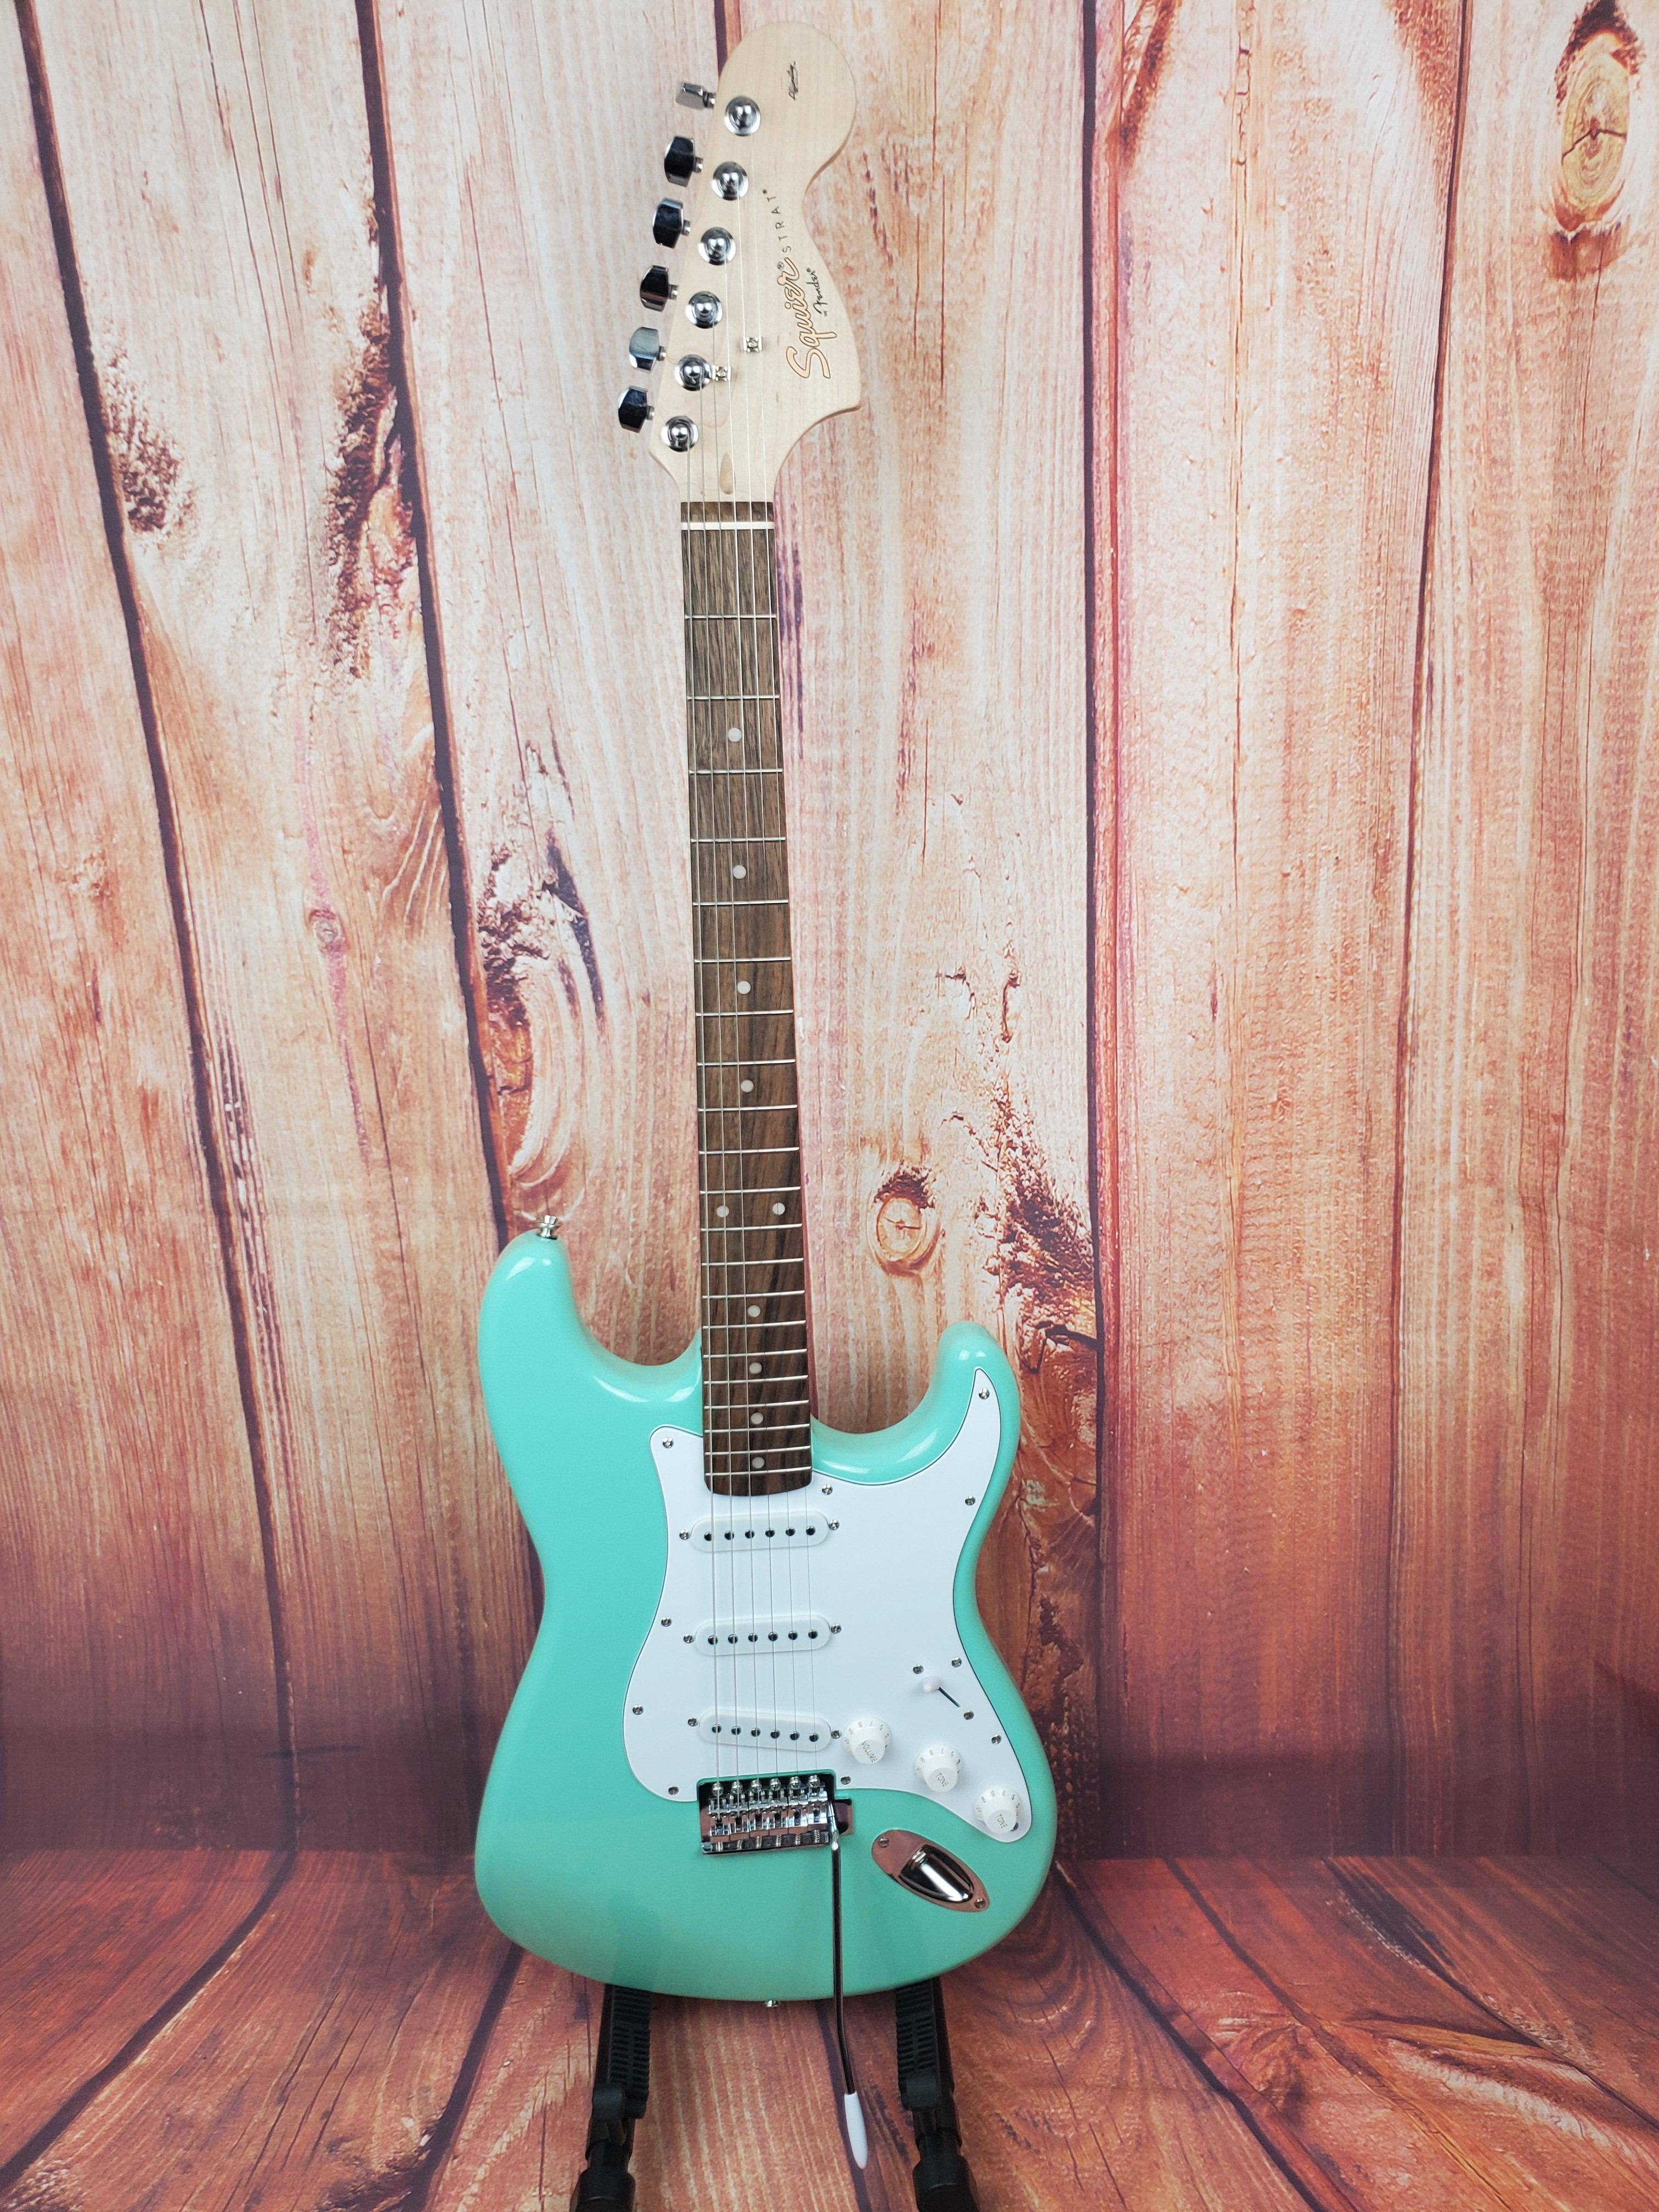 Used-Squier Affinity Series Stratocaster-Surf Green